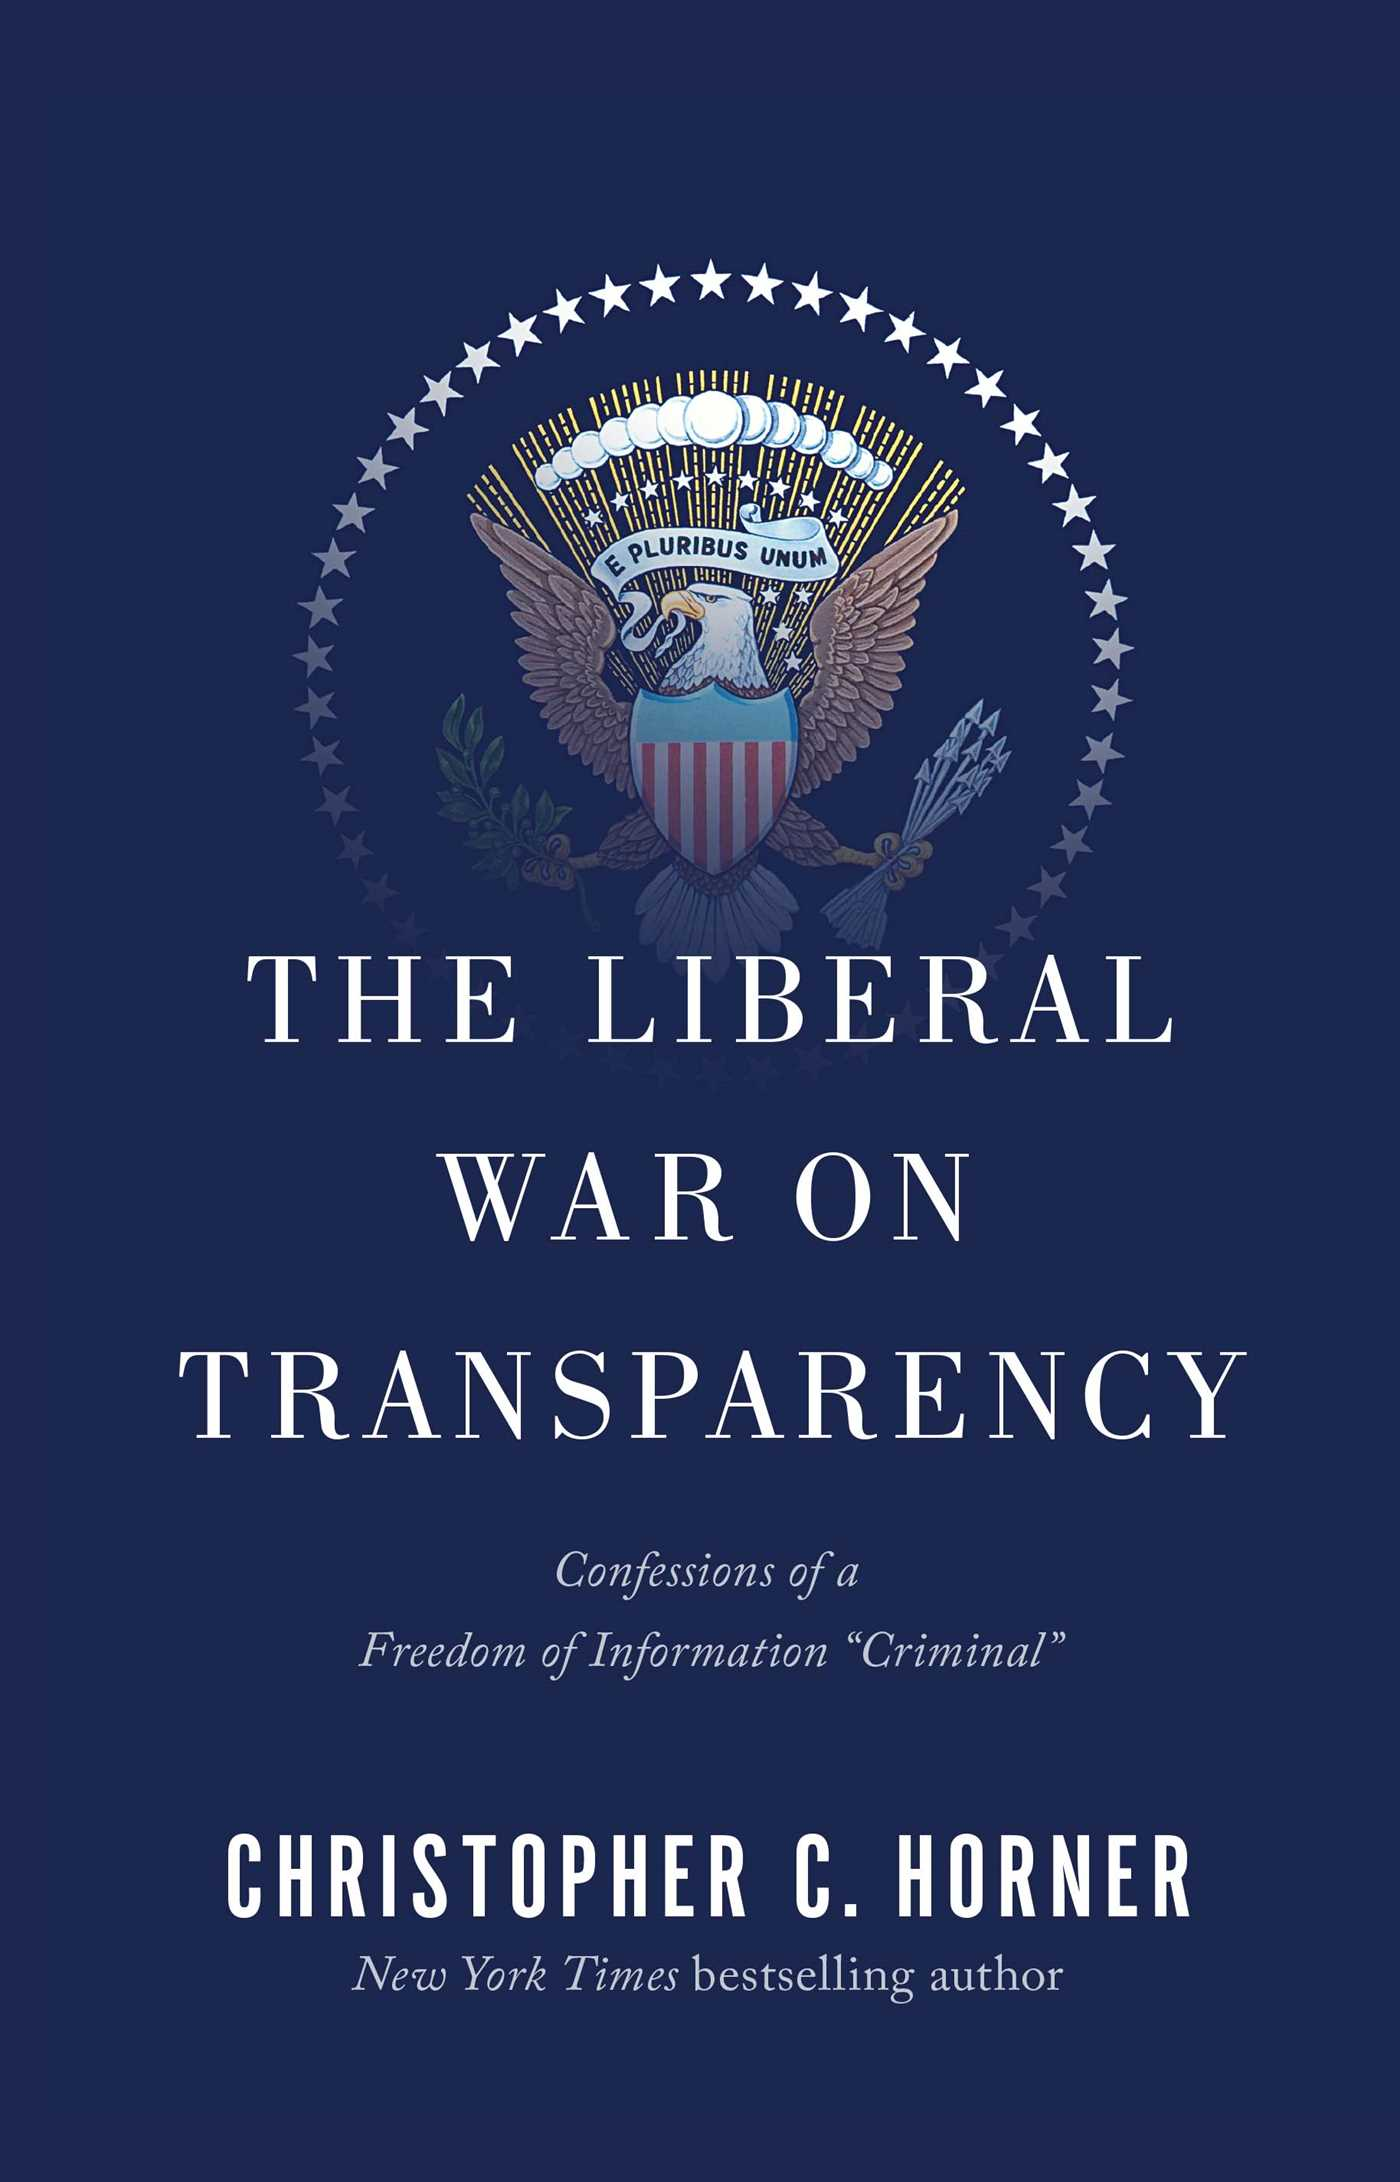 The-liberal-war-on-transparency-9781451694901_hr